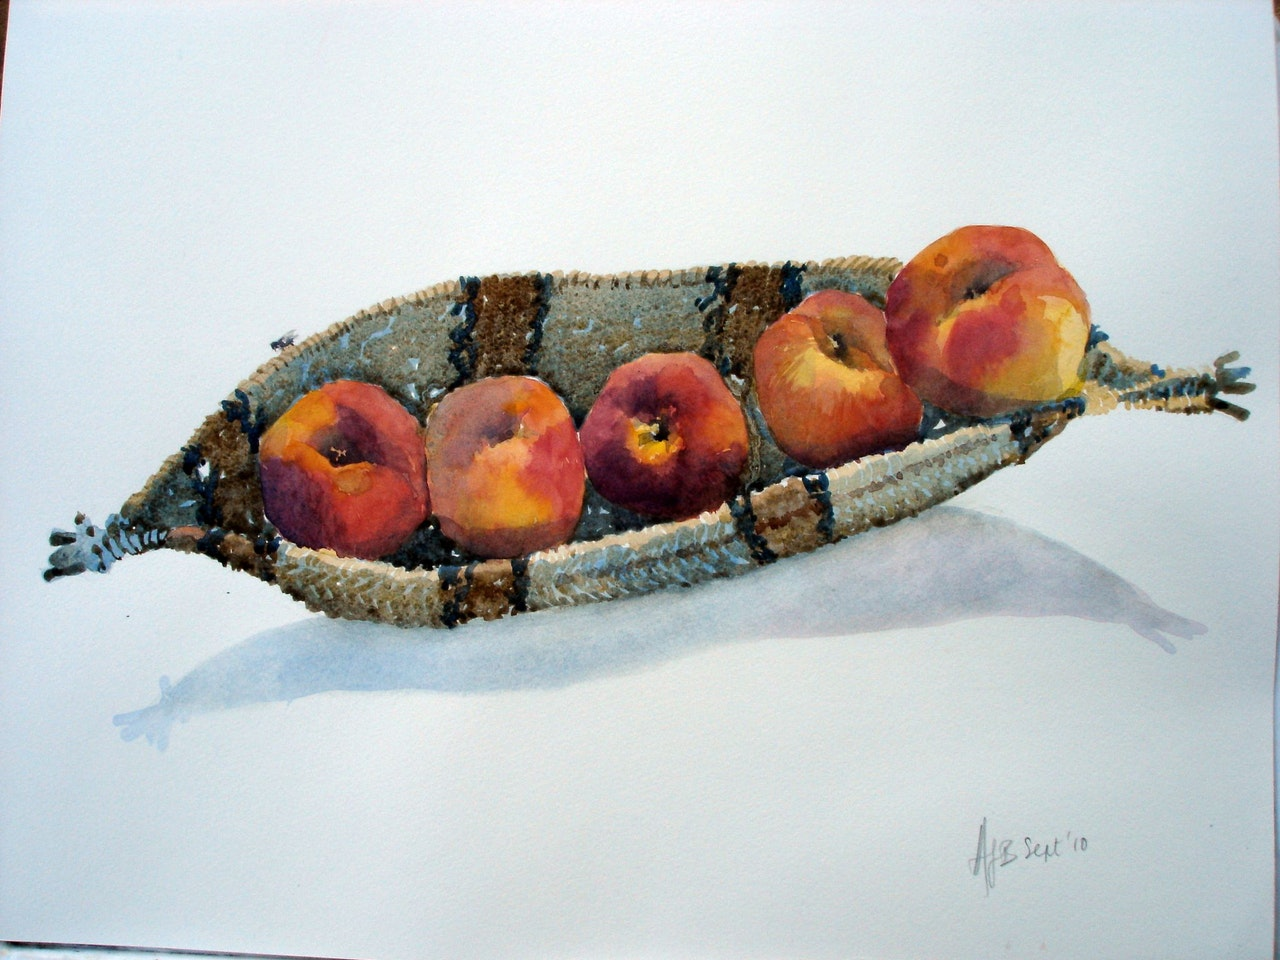 Fly on the peaches(sold Rita Moseley)